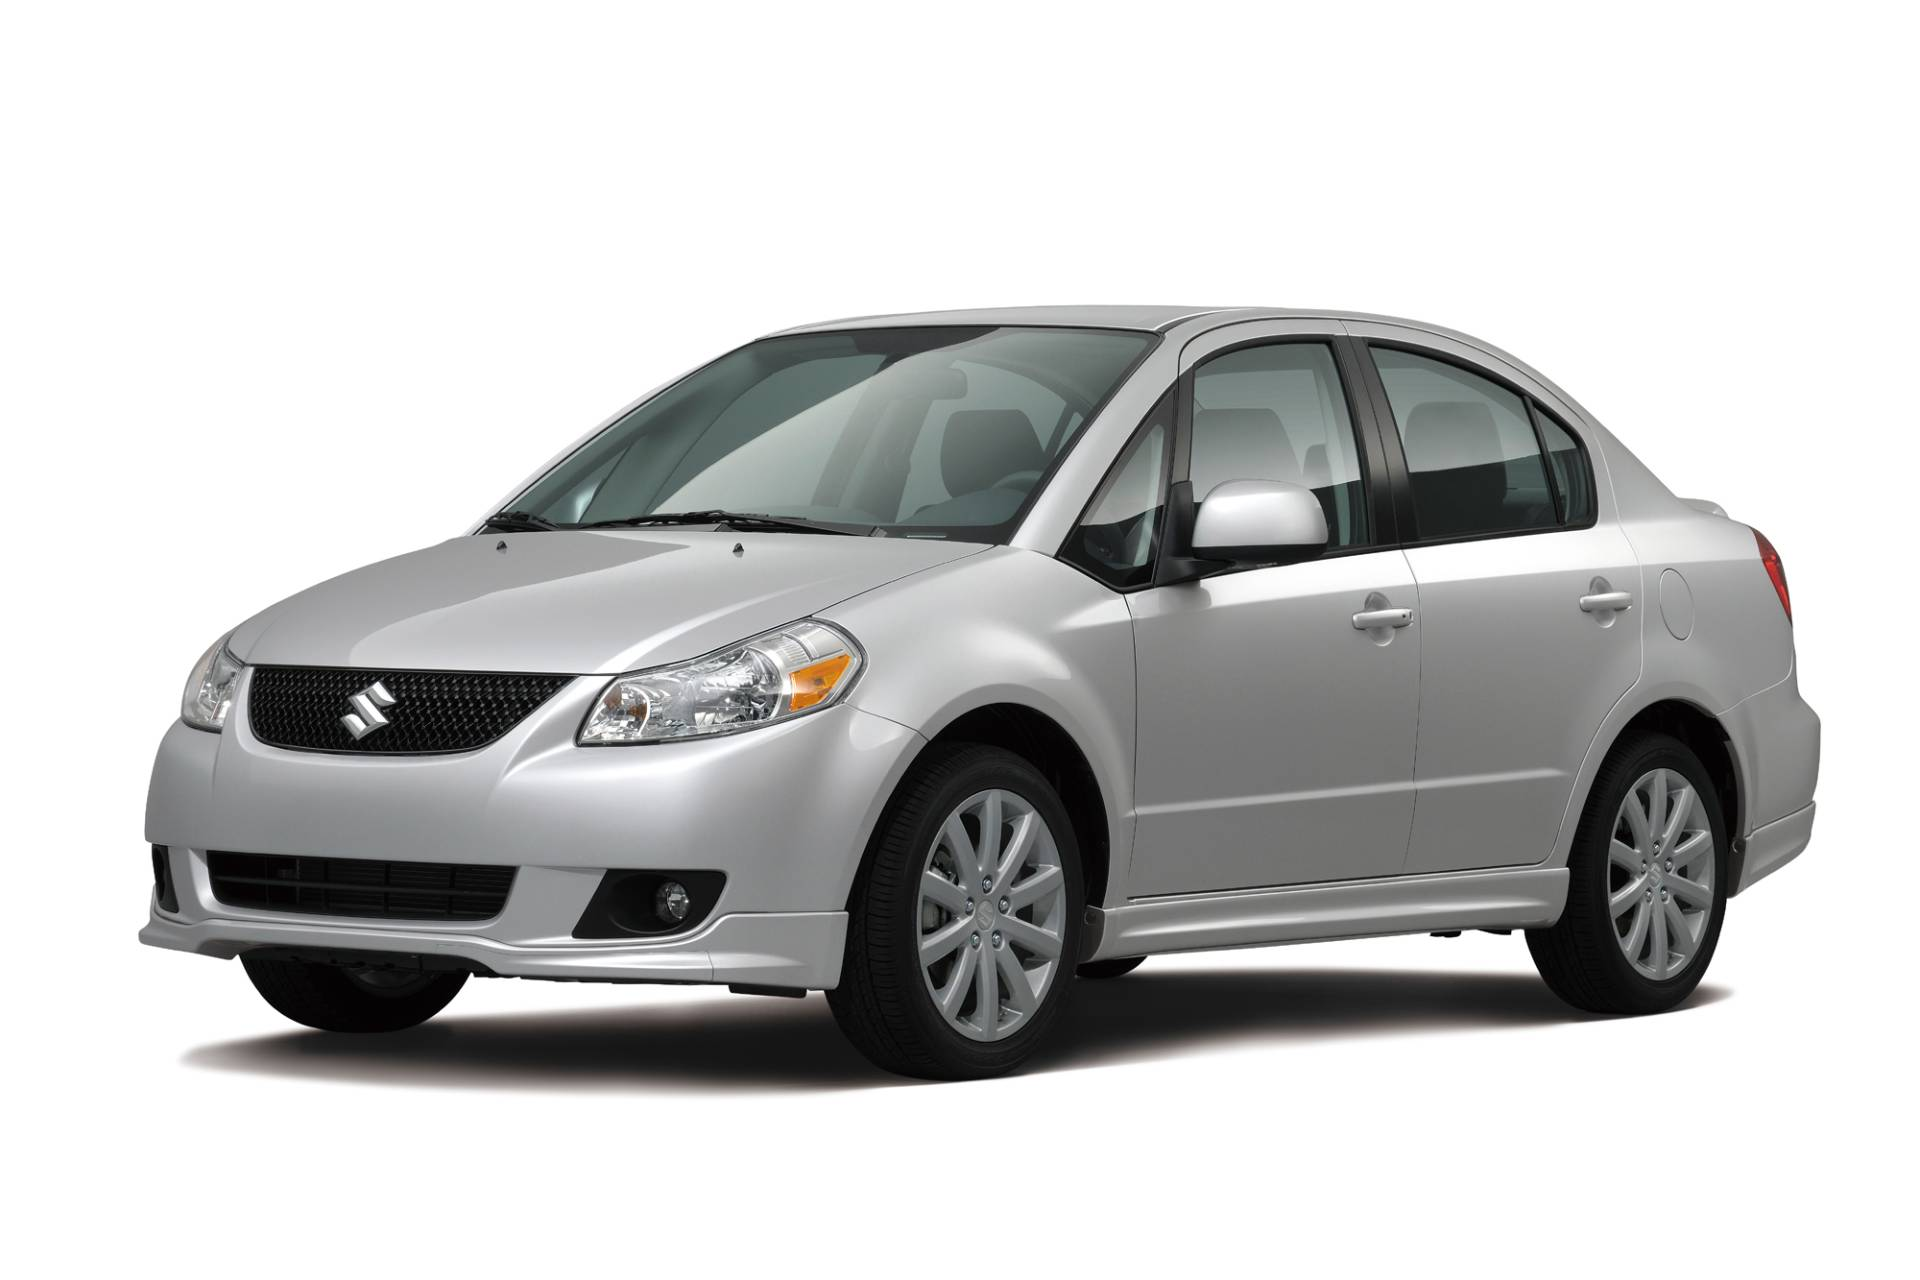 Jd Auto Sales >> 2013 Suzuki SX4 News and Information | conceptcarz.com